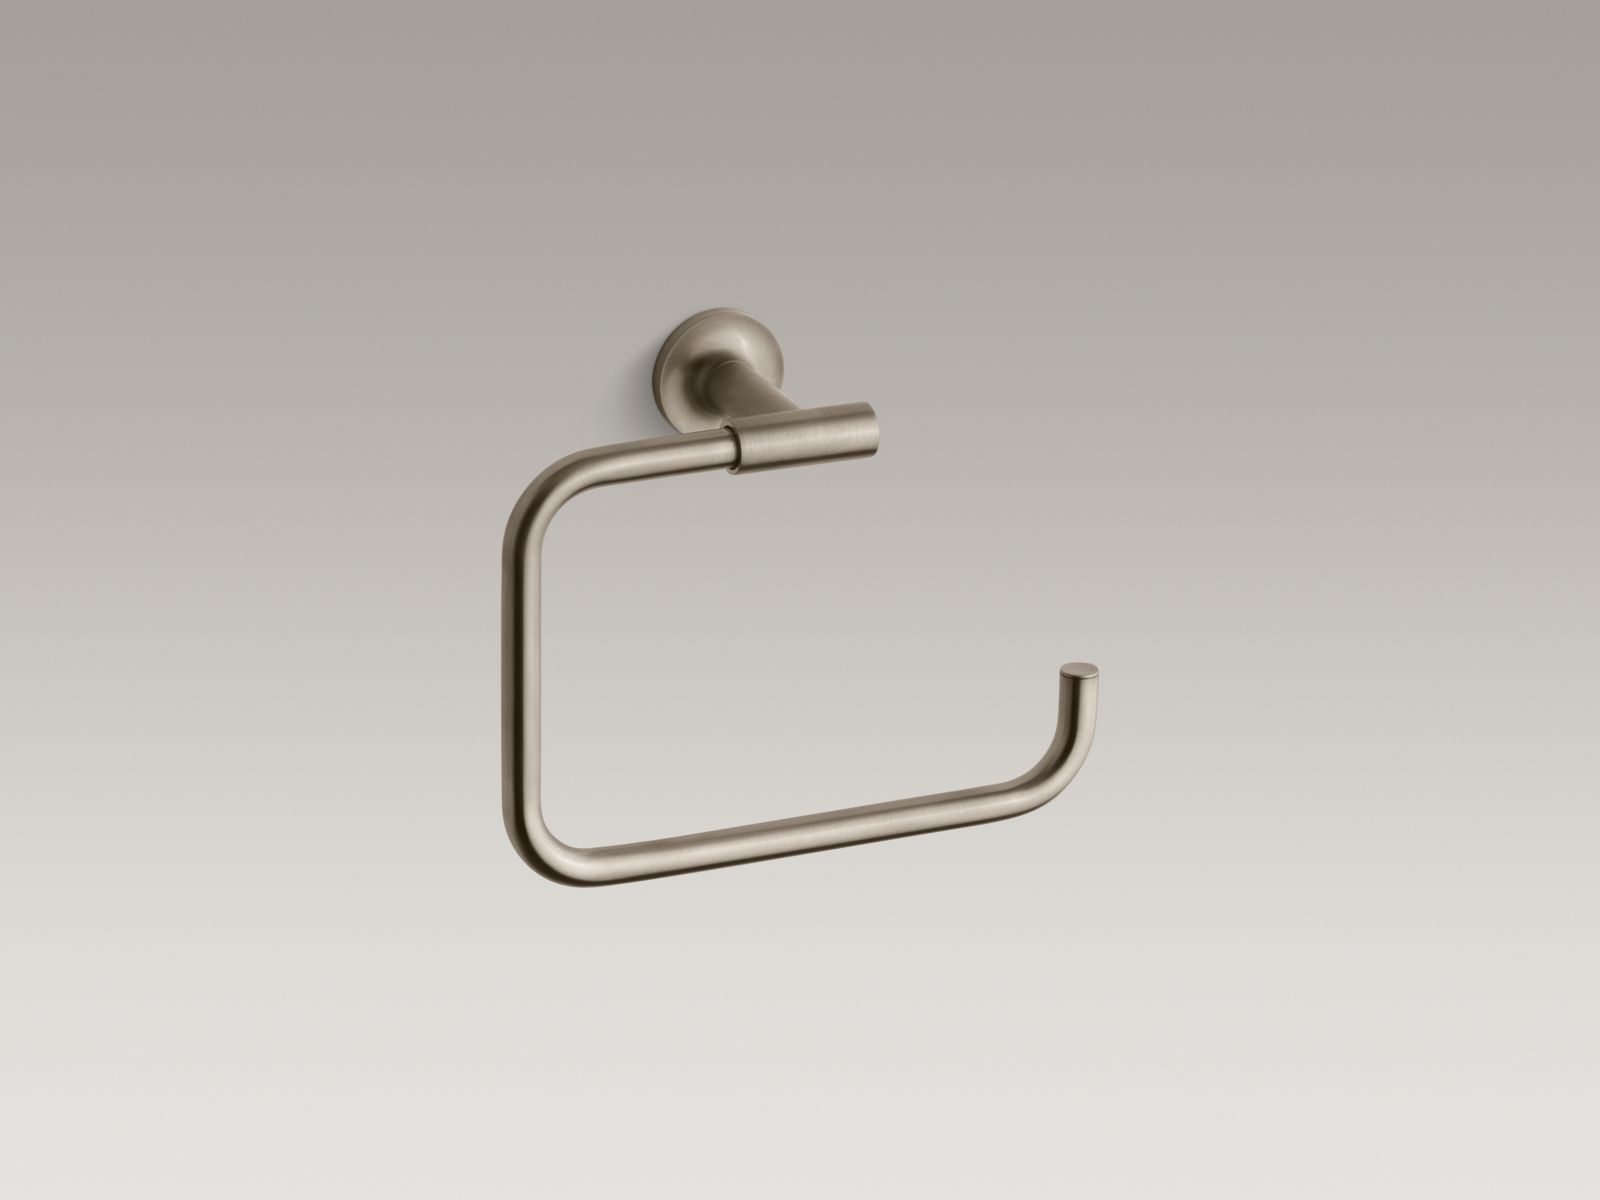 Kohler K-14441-BV Purist Towel Ring Vibrant Brushed Bronze